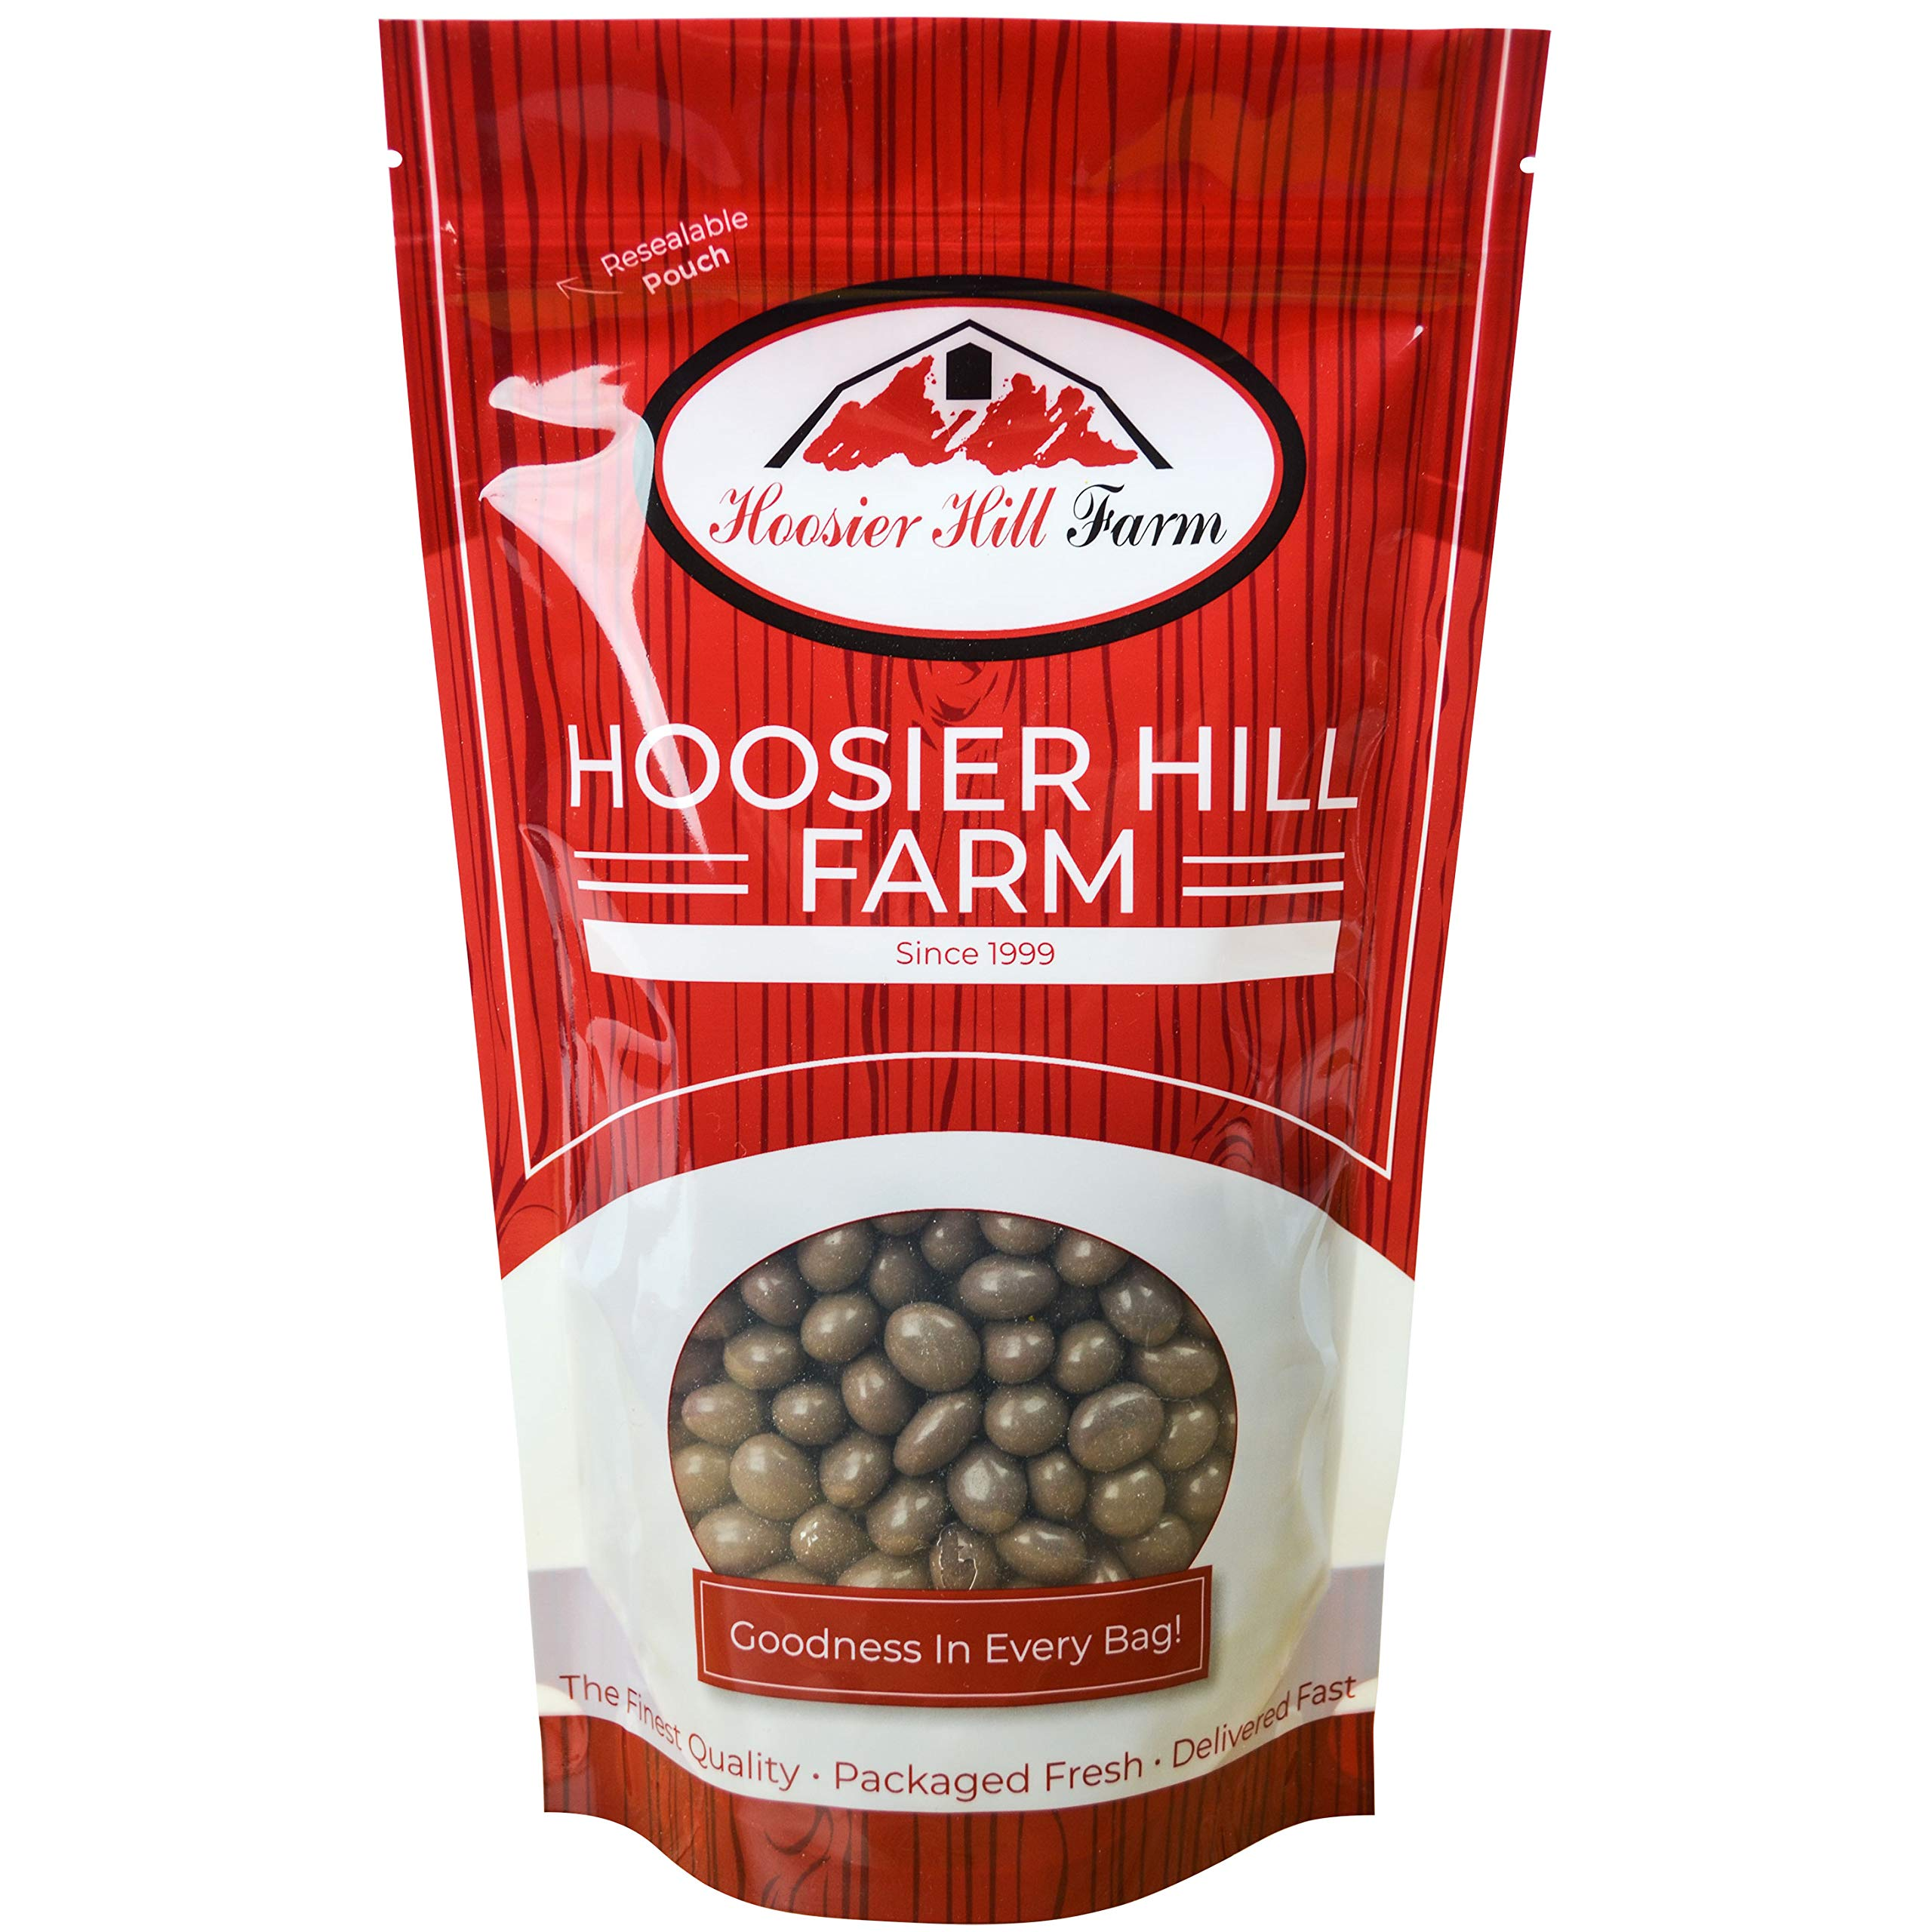 Hoosier Hill Farm Gourmet Milk Chocolate Covered Espresso Beans, 2 Pound